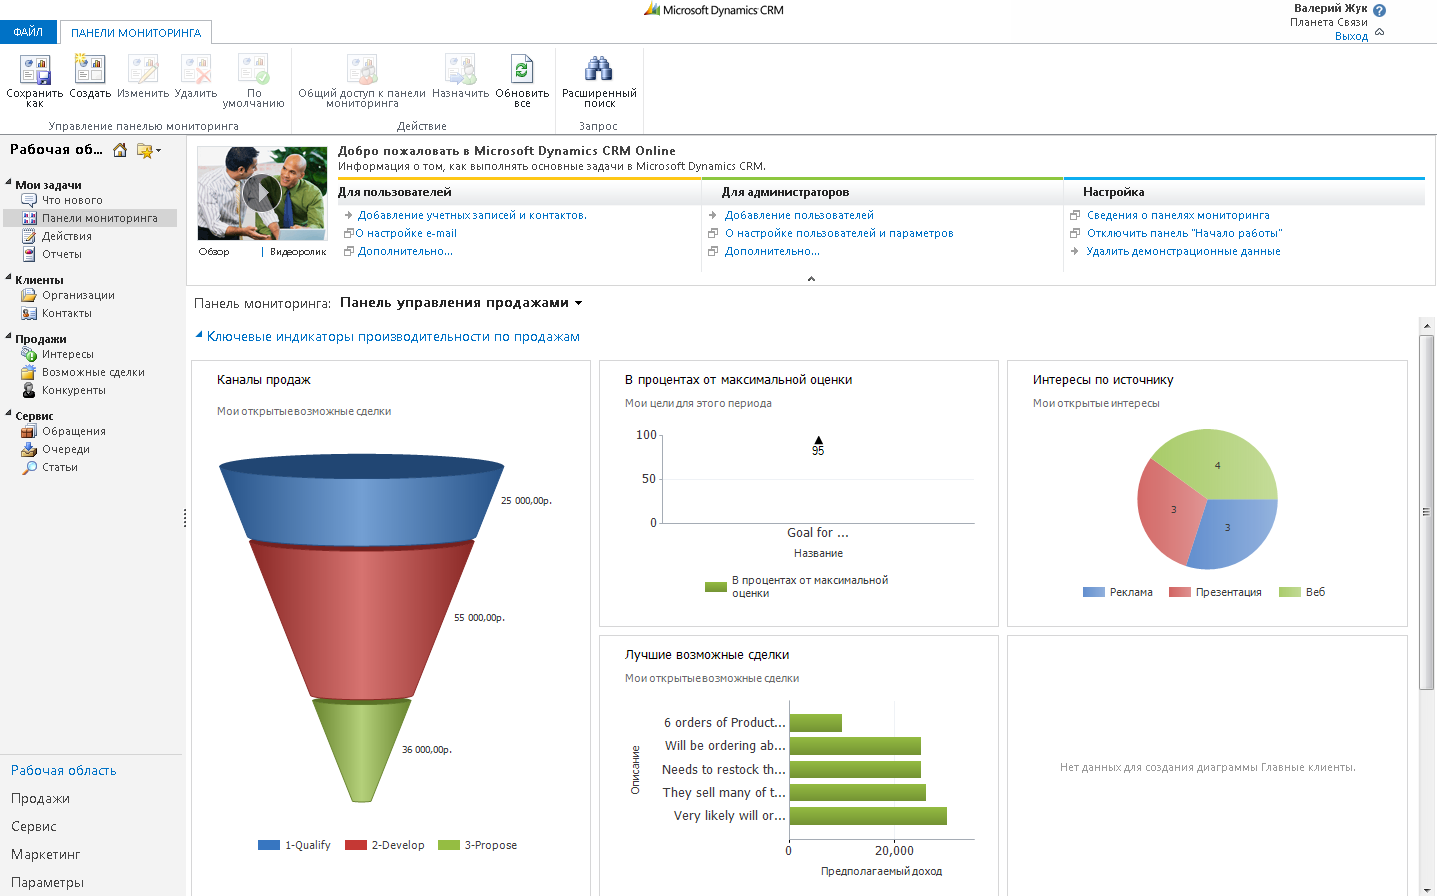 http://www.giustoconsulting.com/wp-content/uploads/2013/09/Microsoft-Dynamics-CRM-Online.png